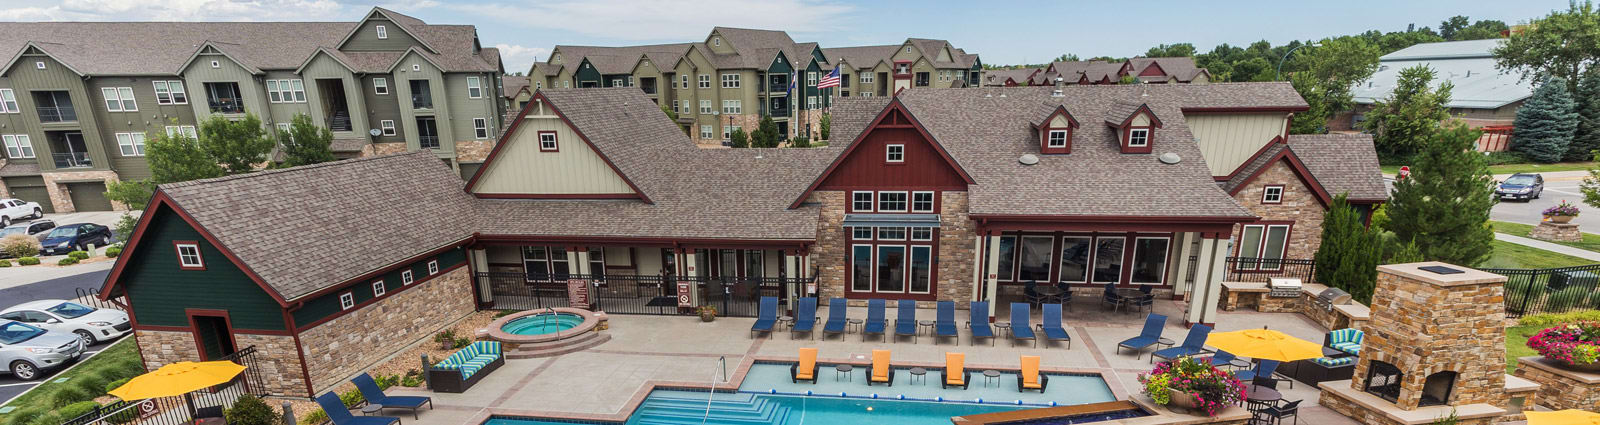 Apartments in Littleton Colorado